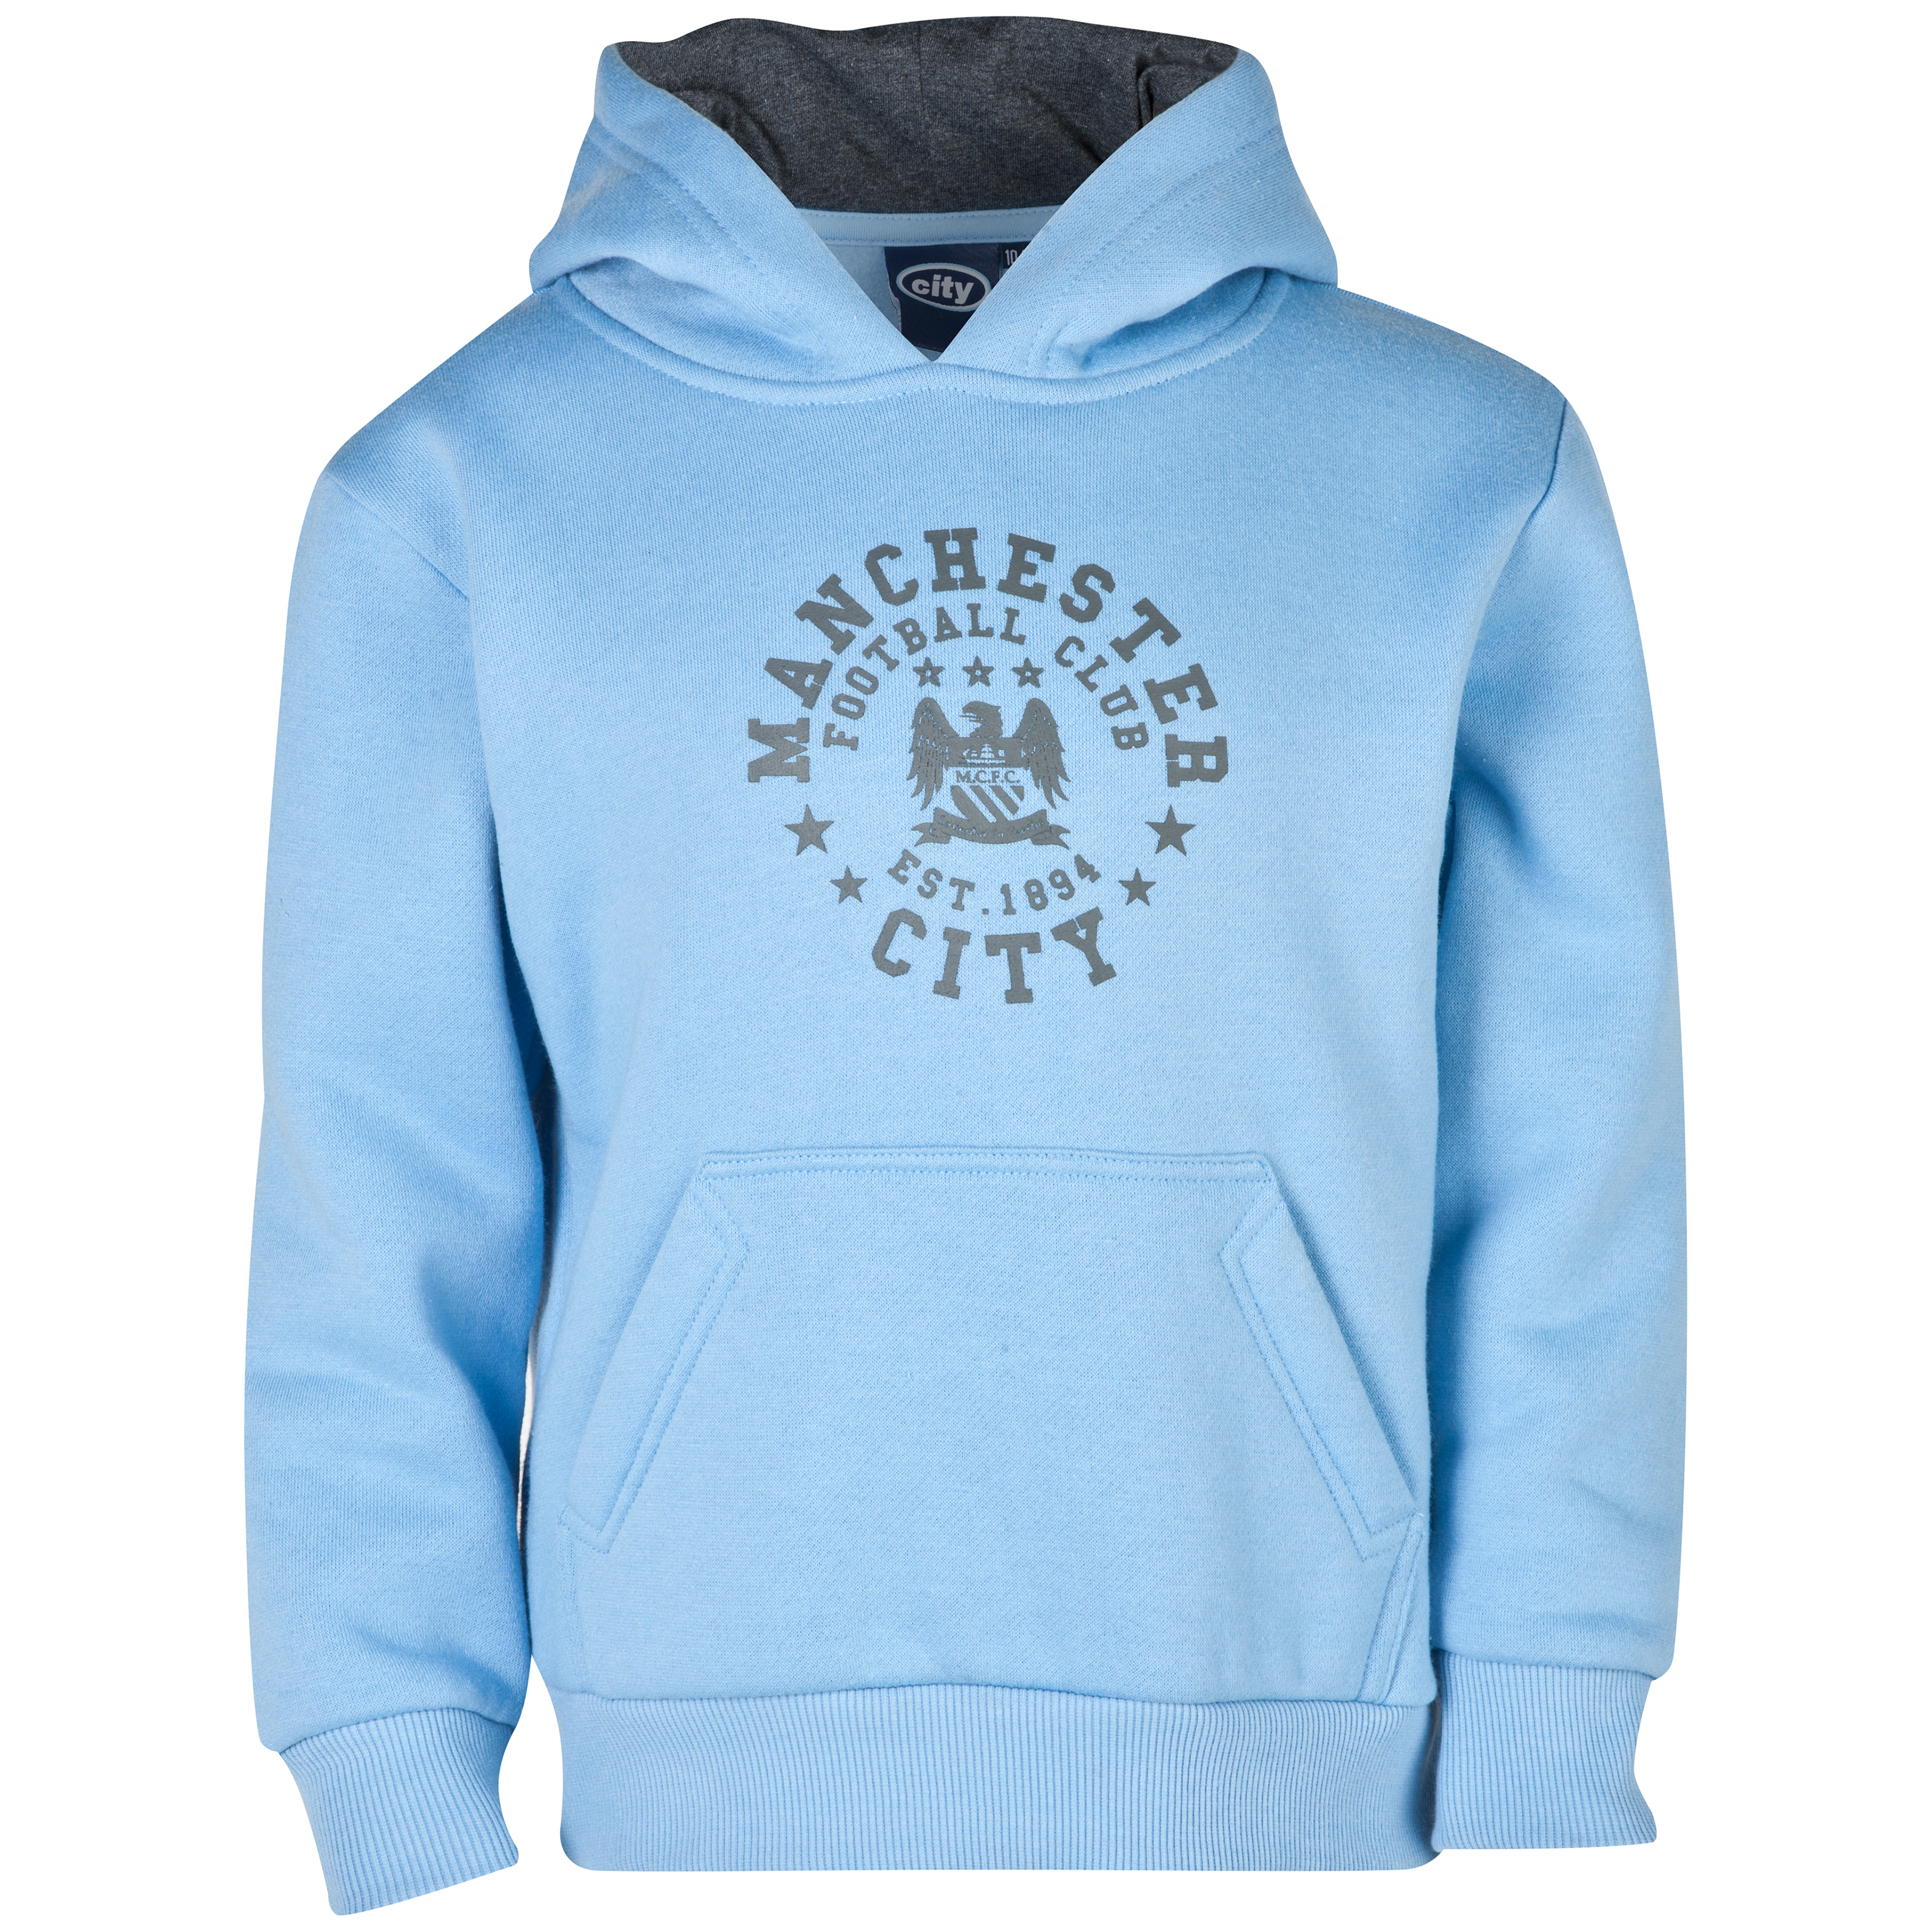 Manchester City Essentials Trail Hoody - Infant Boys Lt Blue